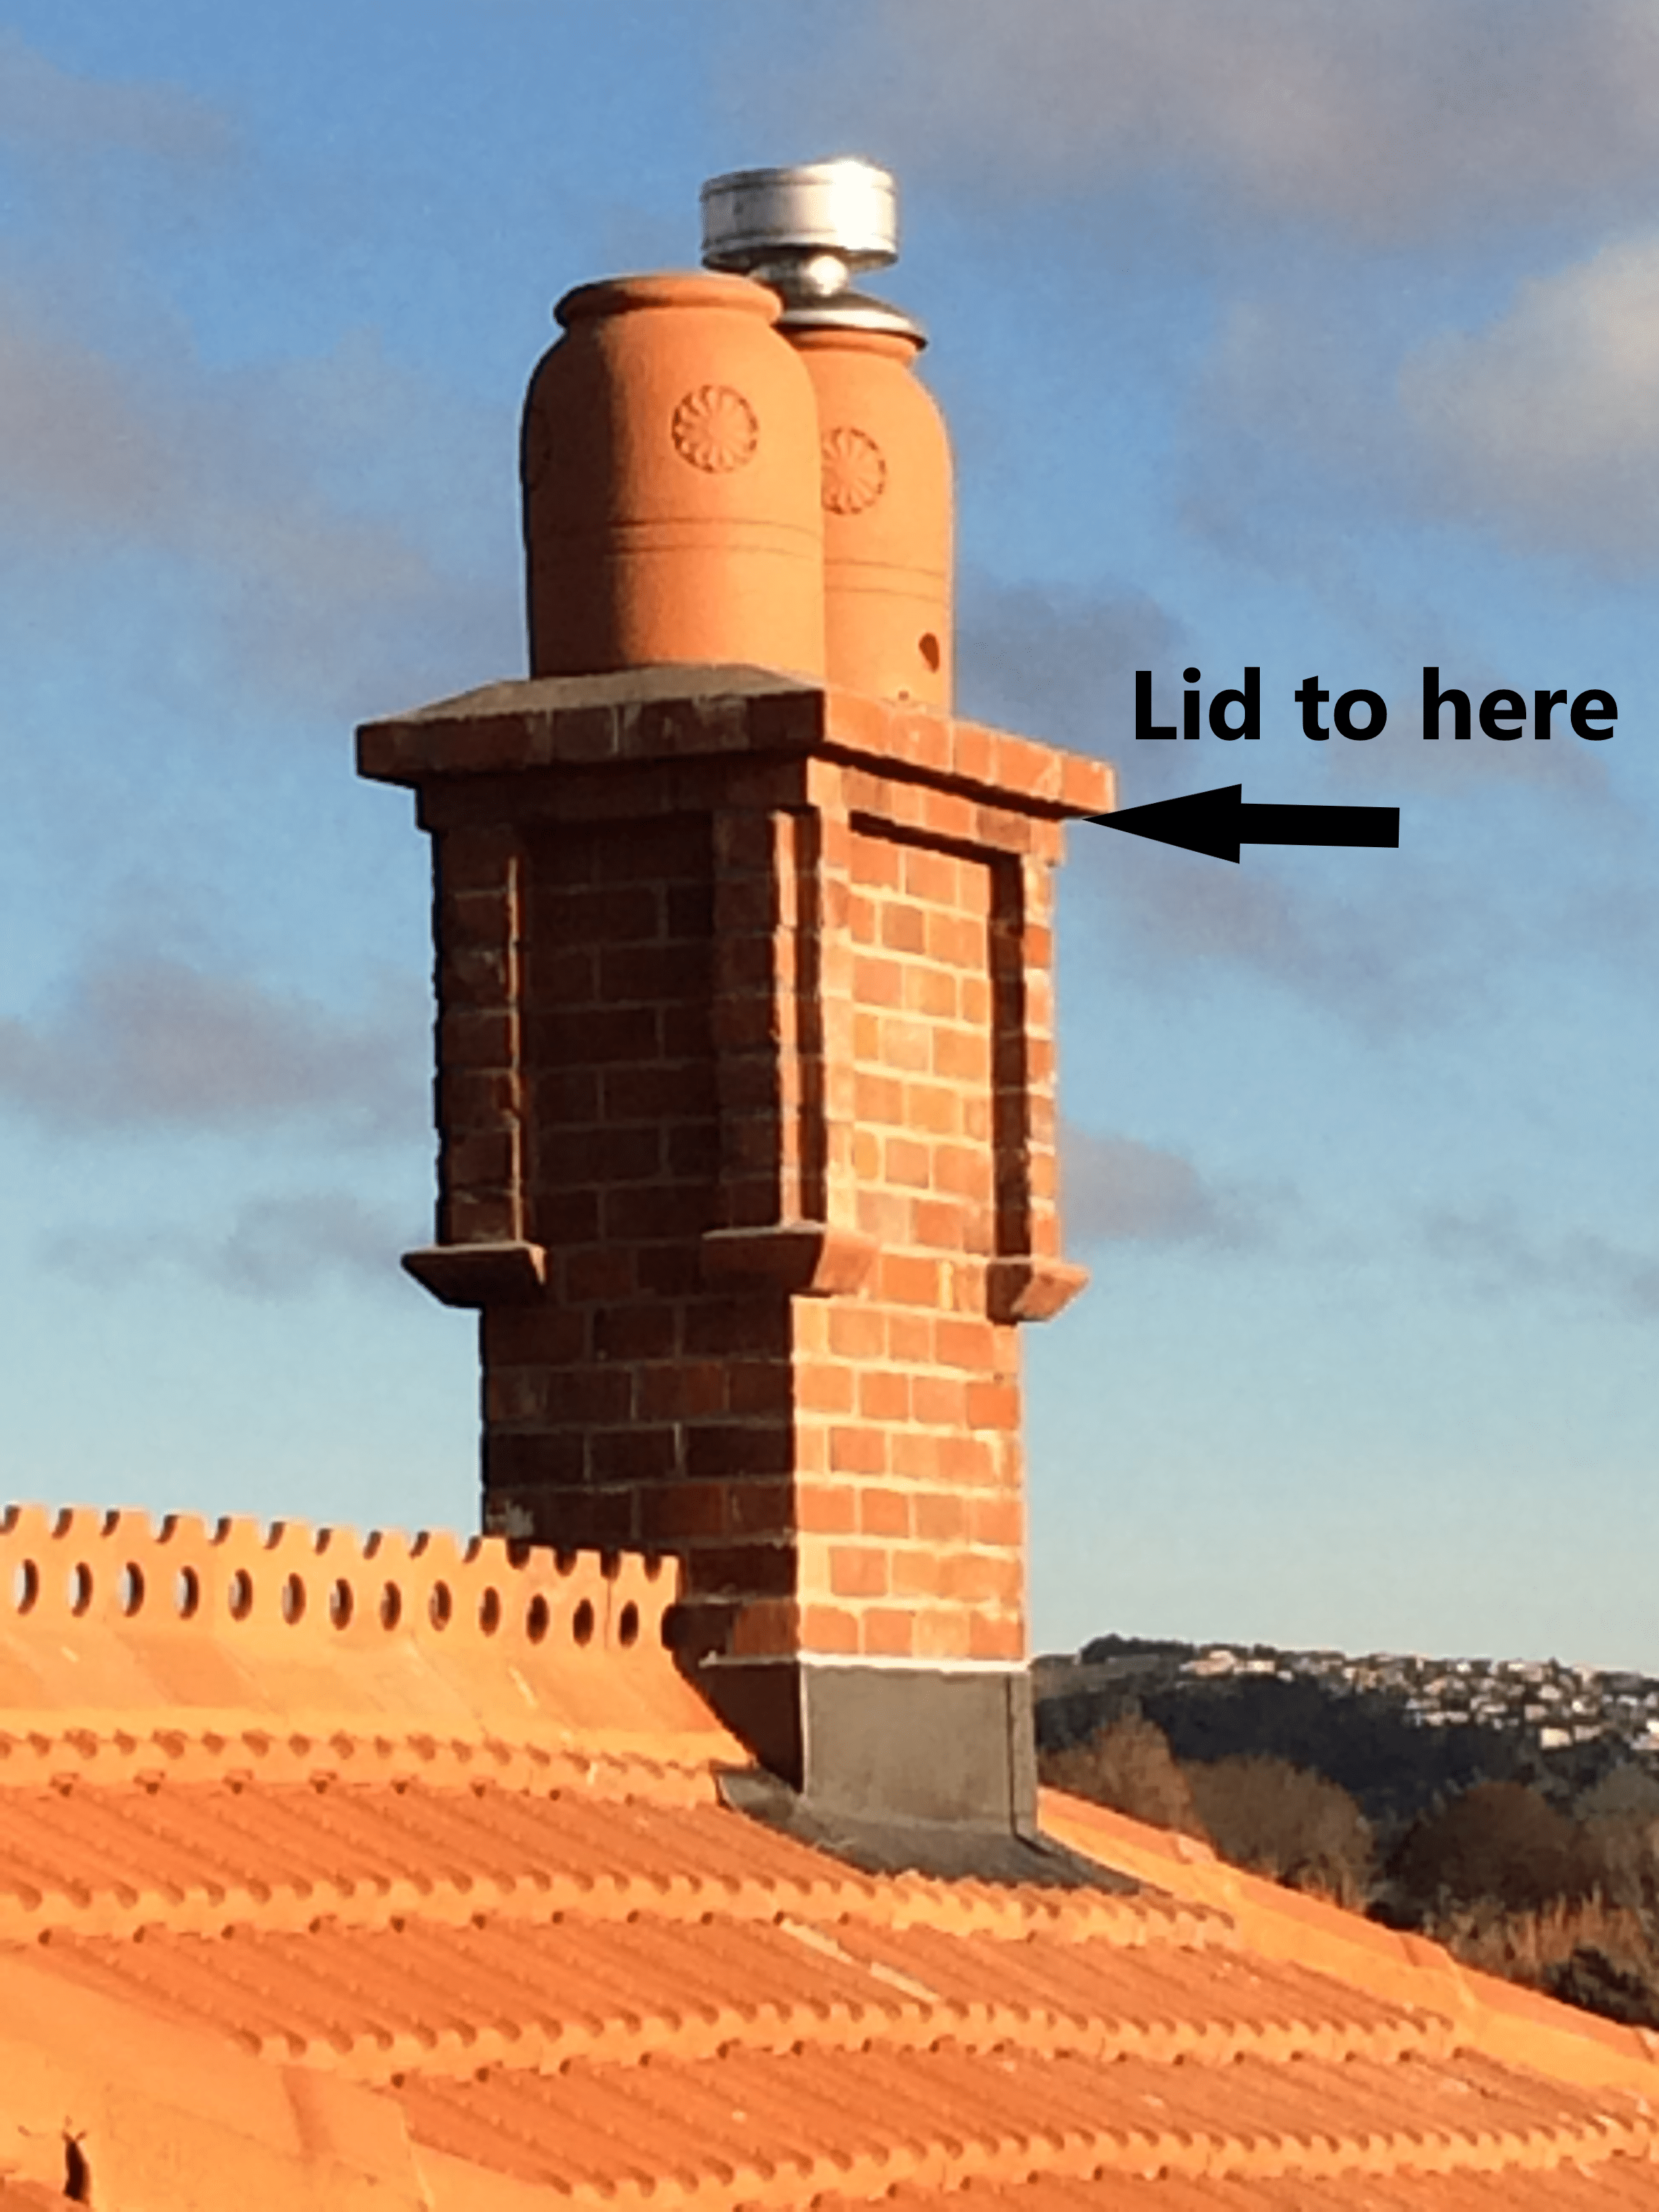 Red Mantle heritage replica chimney replacement showing chimney lid integration